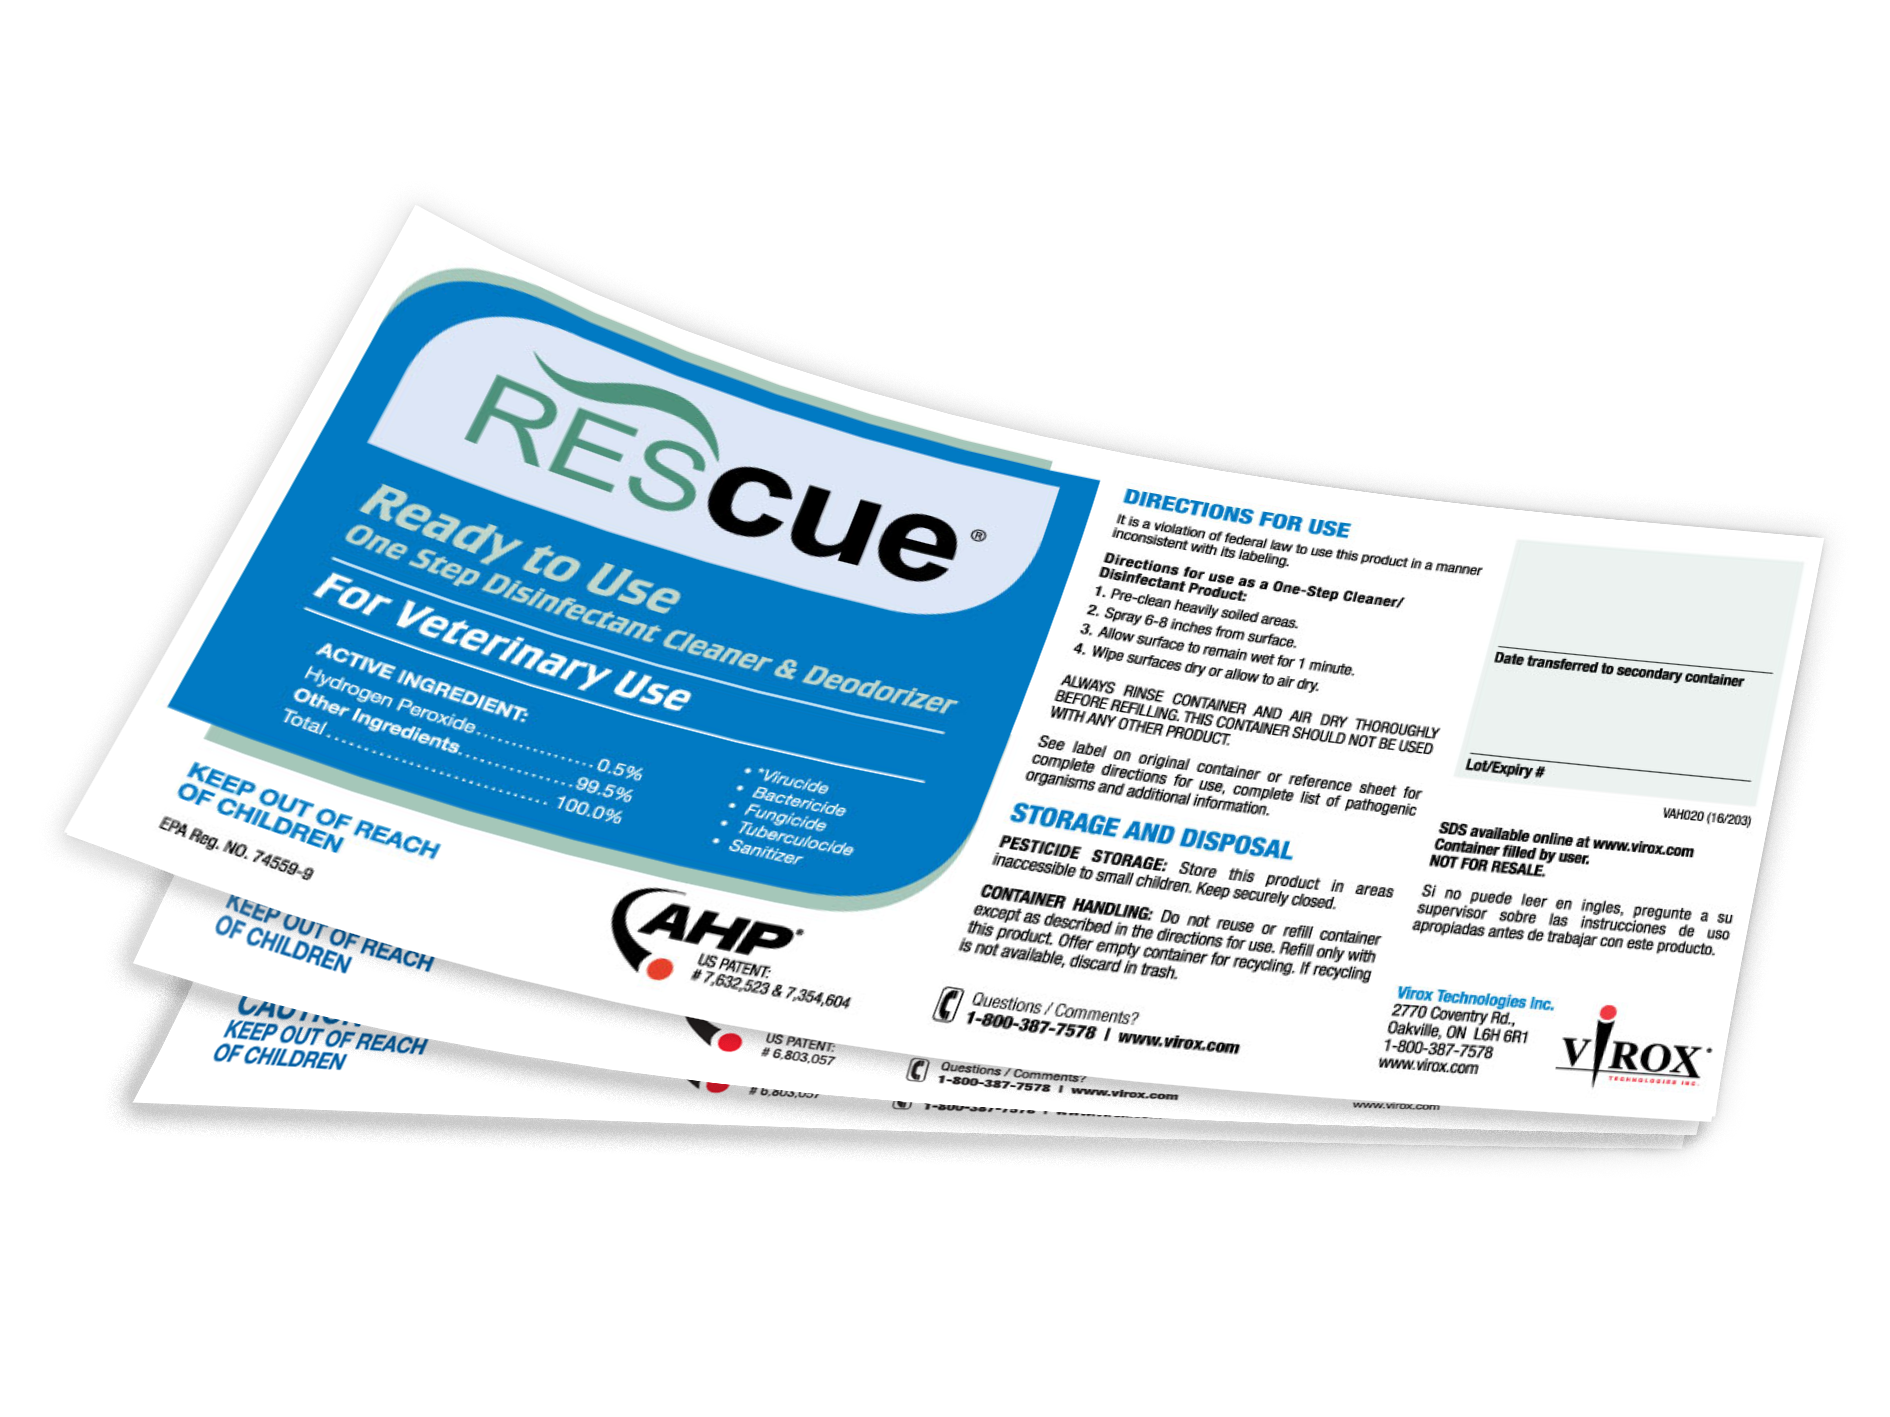 Rescue-RTU-workplace-label-product-image.png